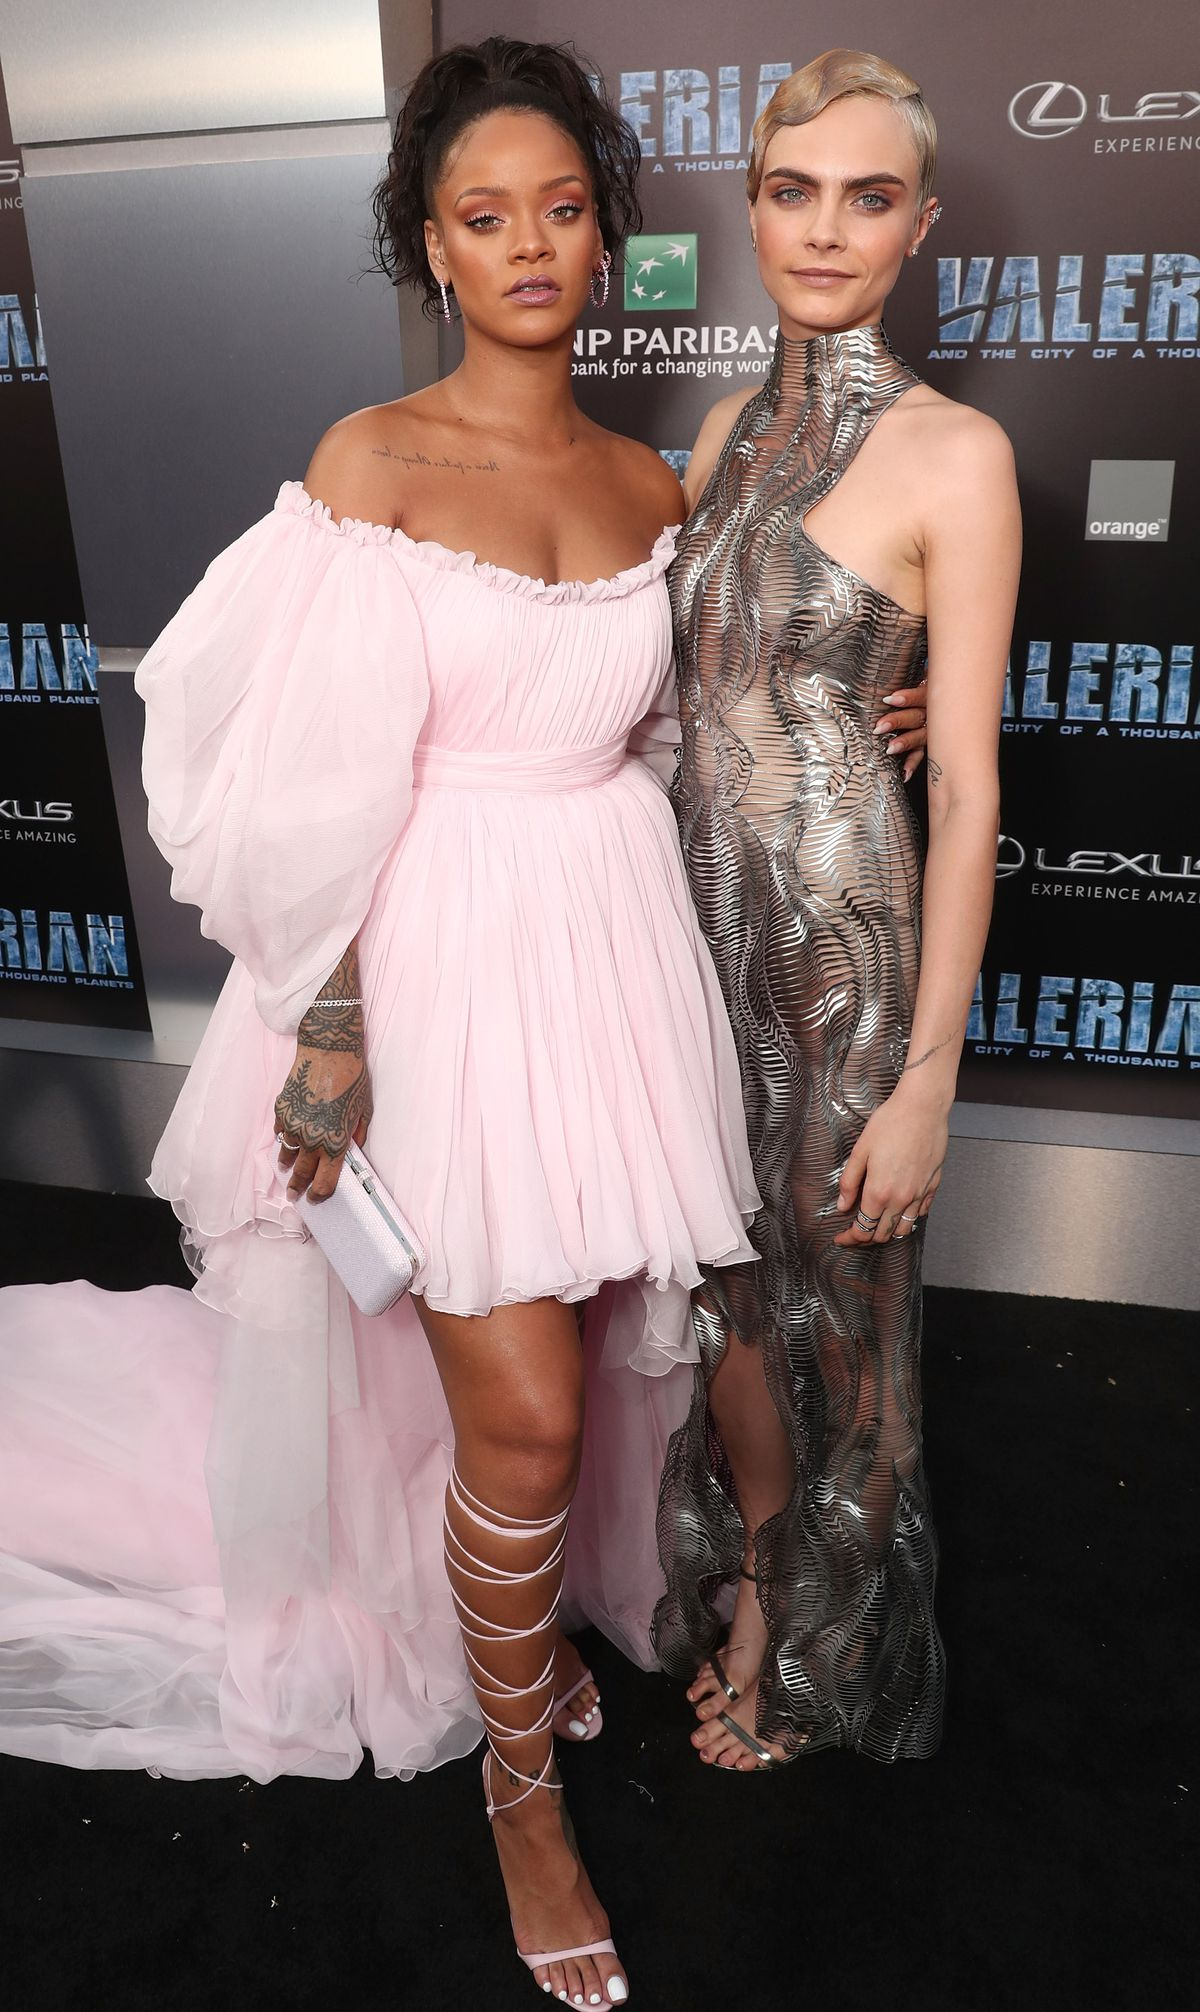 Rihanna and Cara Delevingne attend the premiere of EuropaCorp And STX Entertainment's 'Valerian And The City Of A Thousand Planets' at TCL Chinese Theatre on July 17, 2017 in Hollywood, California.